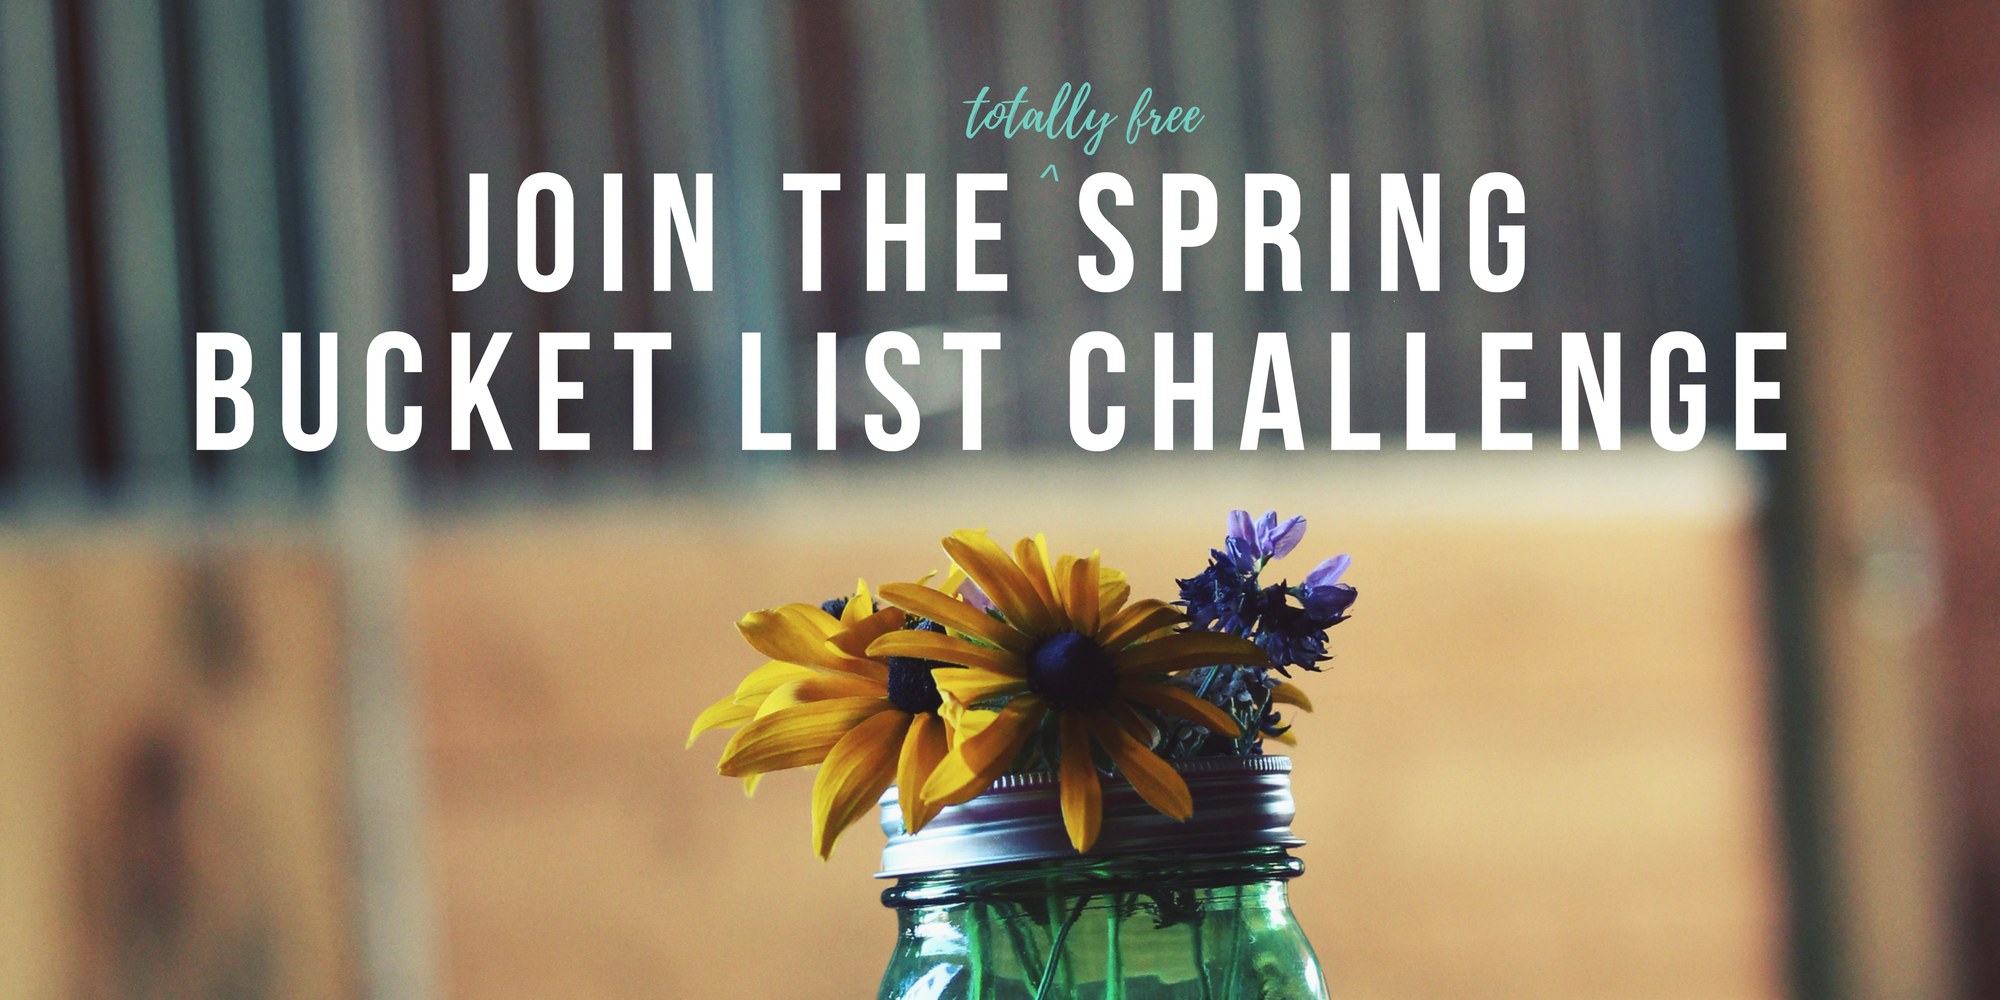 JOIN THE (TOTALLY FREE) SPRING BUCKET LIST CHALLENGE (1).png